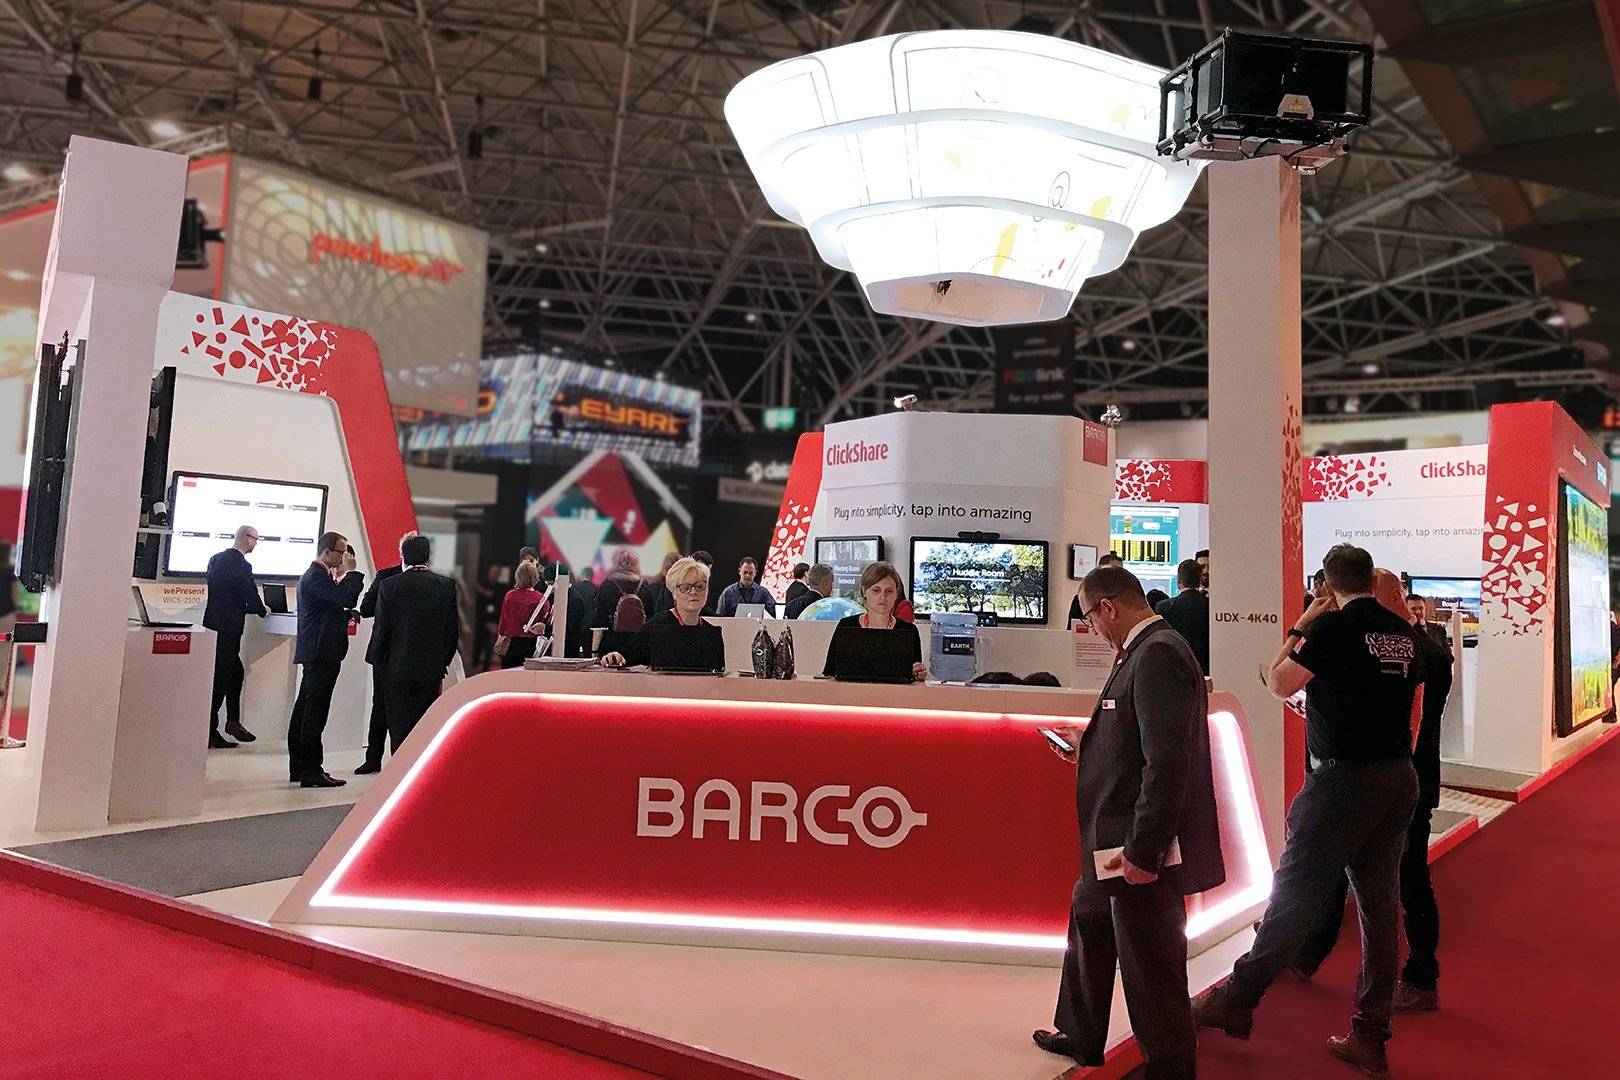 booth of Barco at the Netherlands (Holland) exhibition